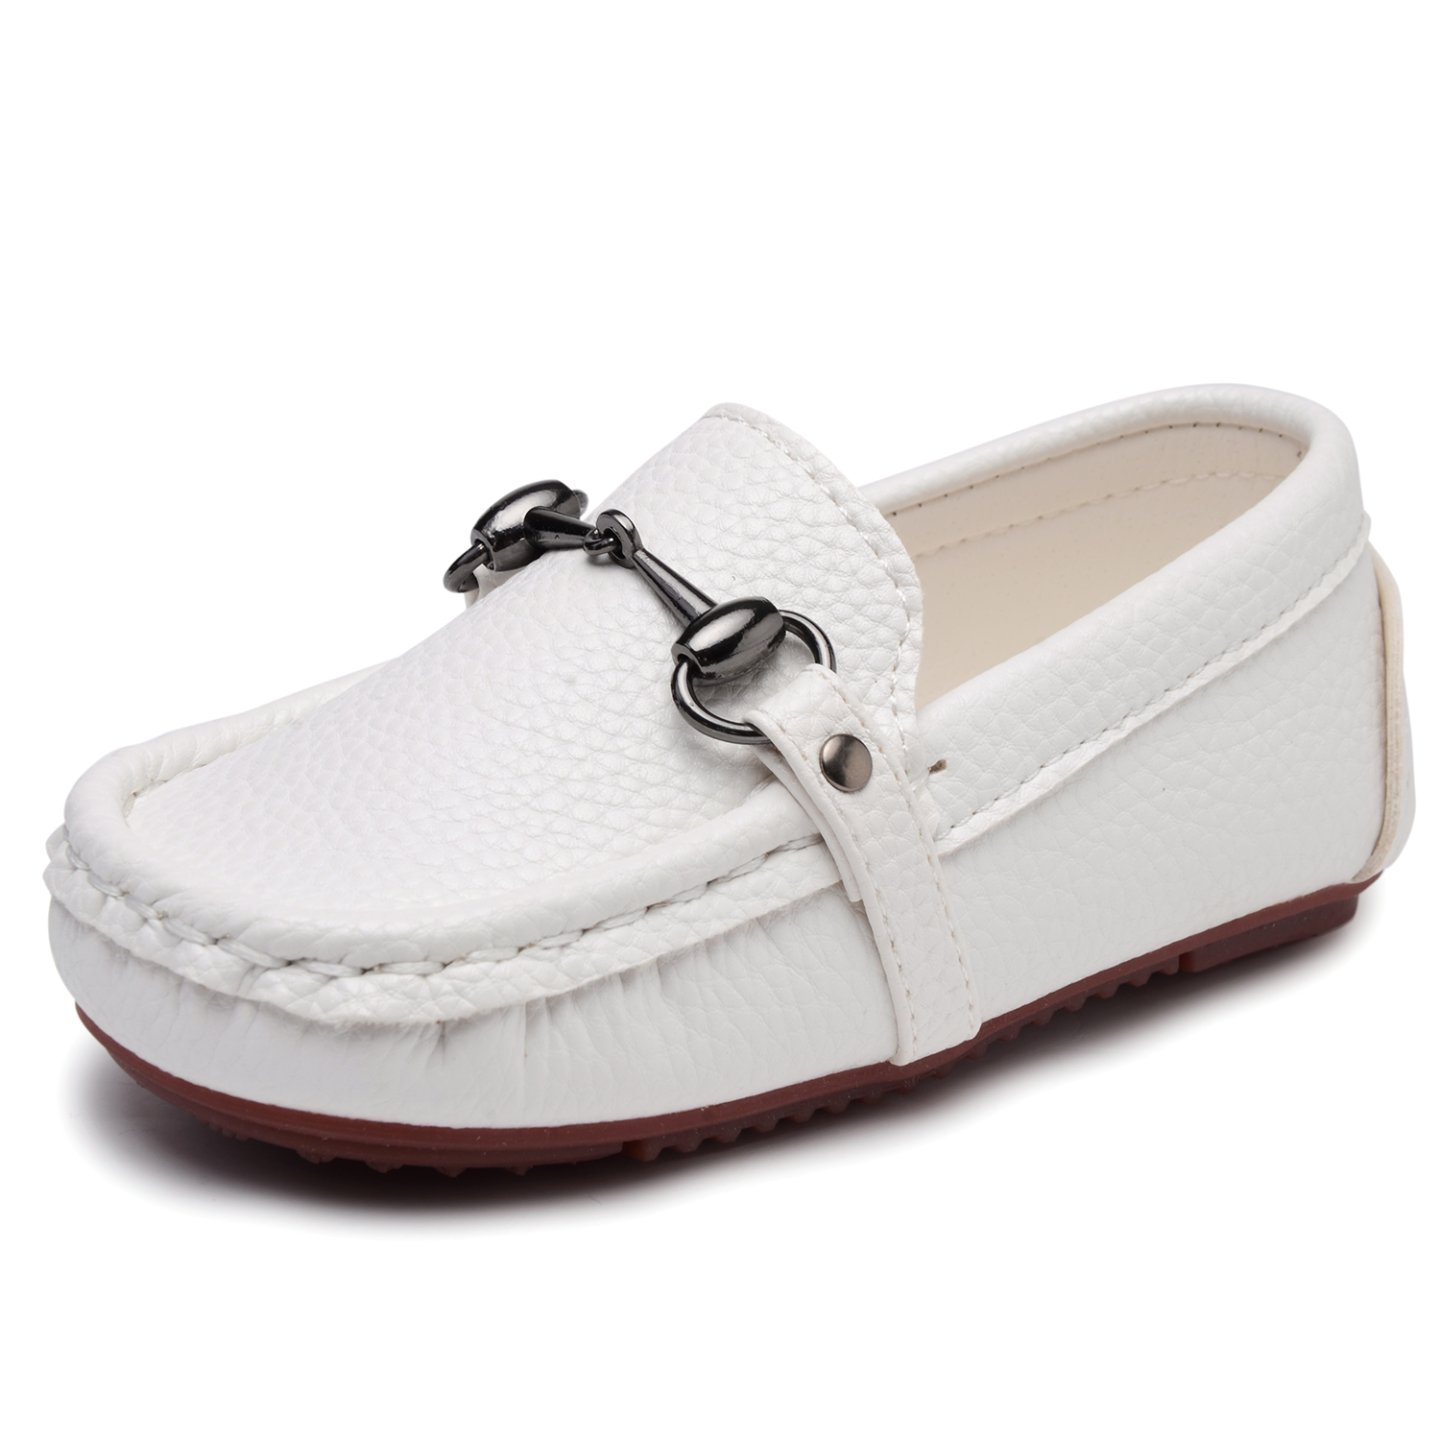 UBELLA Toddler Boys Girls Soft Split Leather Slip-On Loafer Boat Dress Shoes